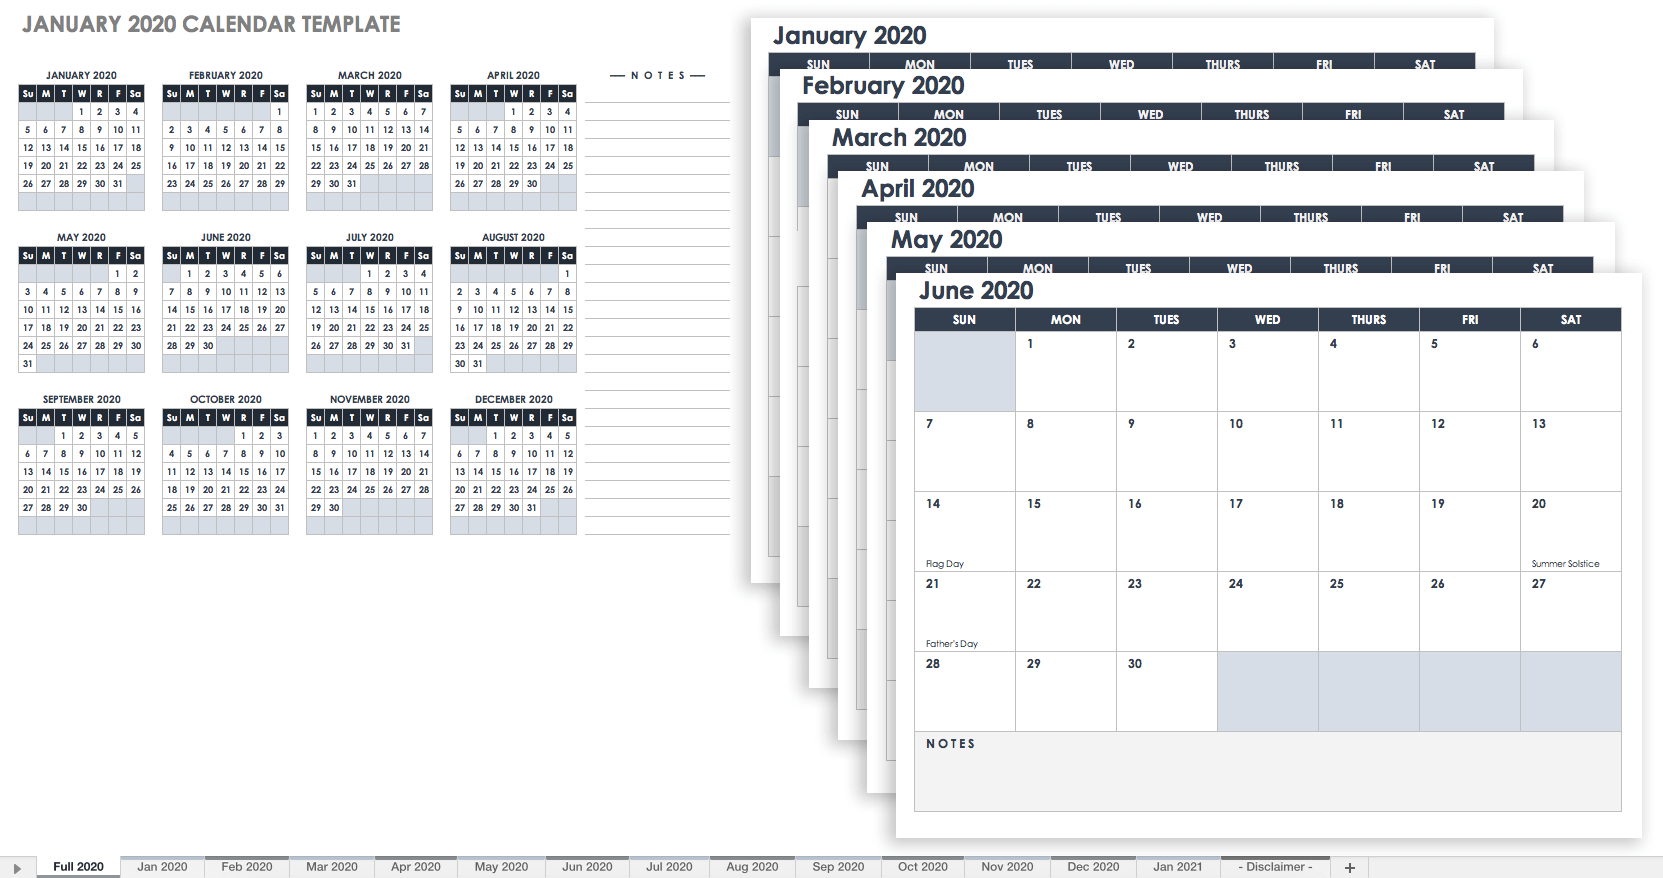 2018 Calendar Spreadsheet Google Sheets For 15 Free Monthly Calendar Templates  Smartsheet